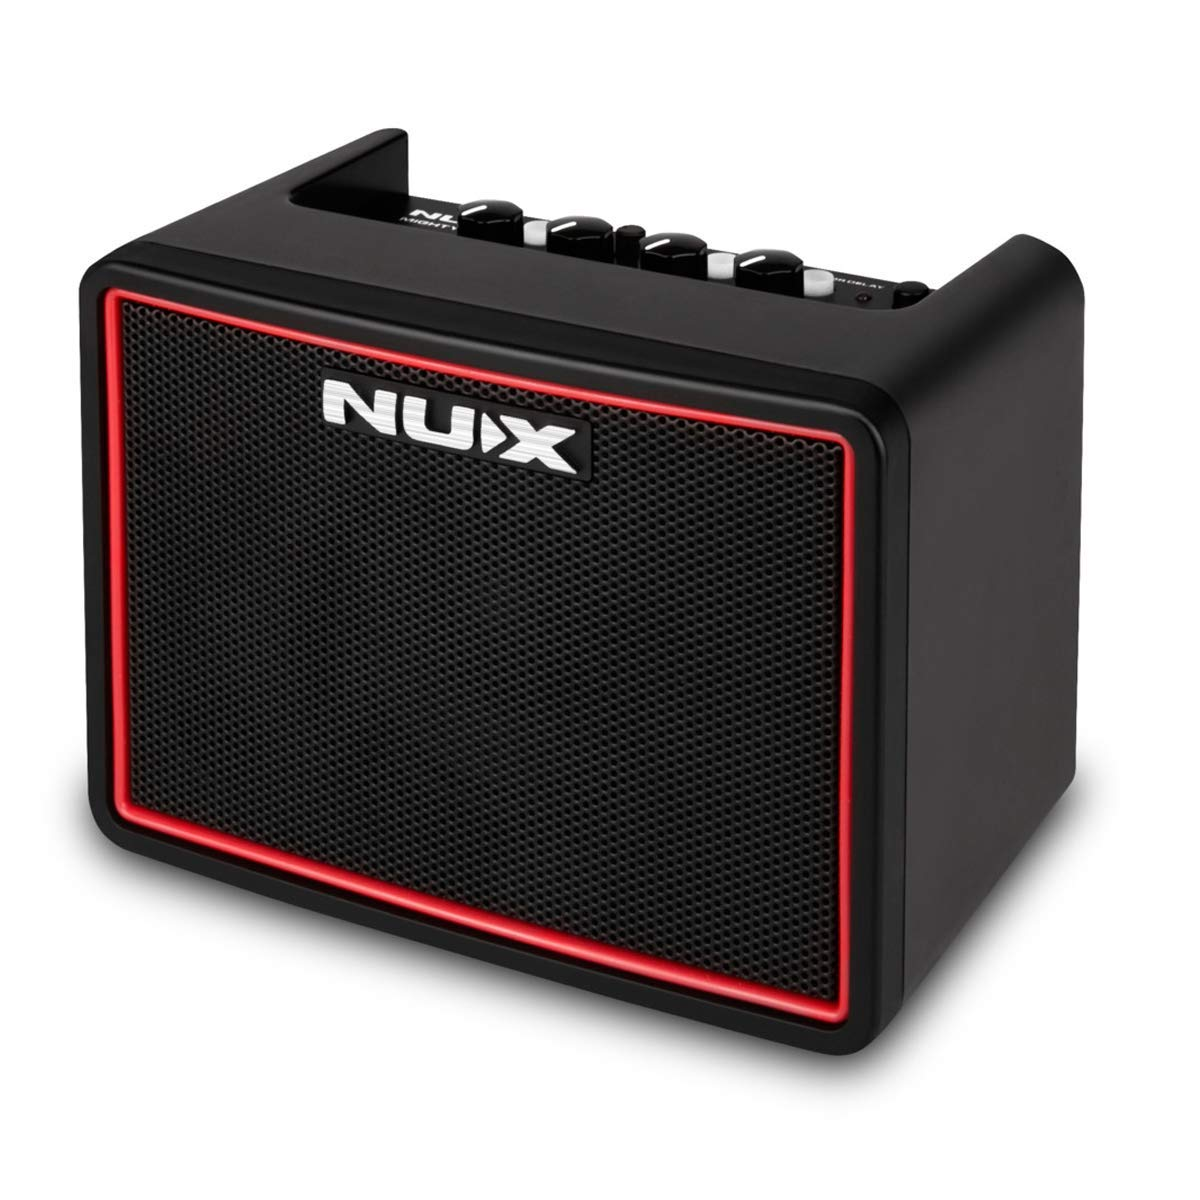 NUX Mighty Lite BT Mini Portable Modeling Guitar Amplifier with Bluetooth by NUX